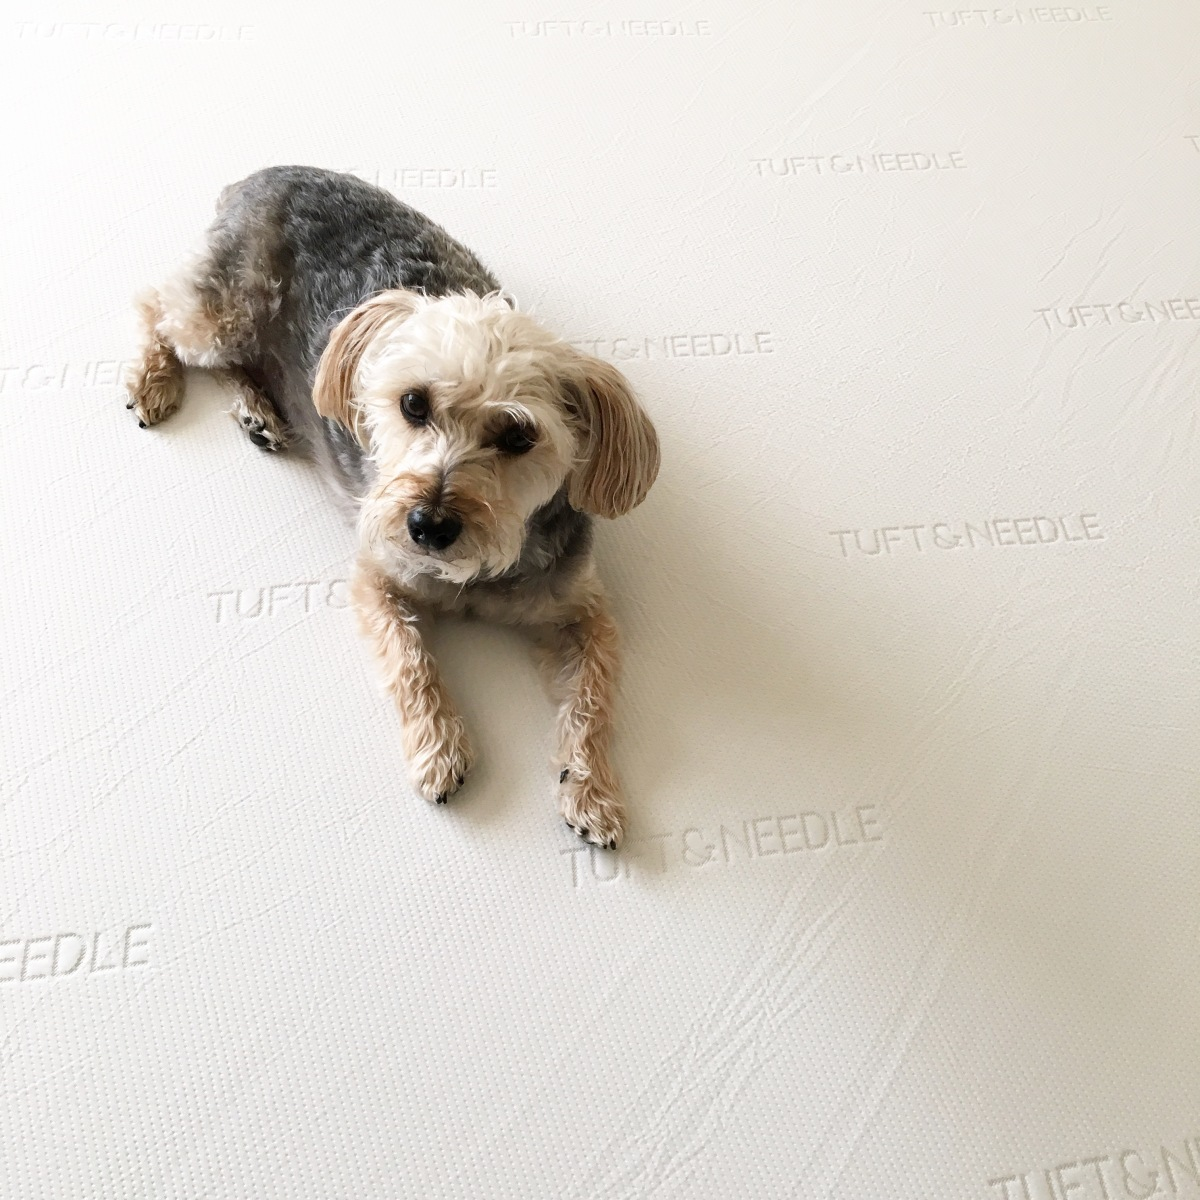 Our Tuft & Needle Mattress Review